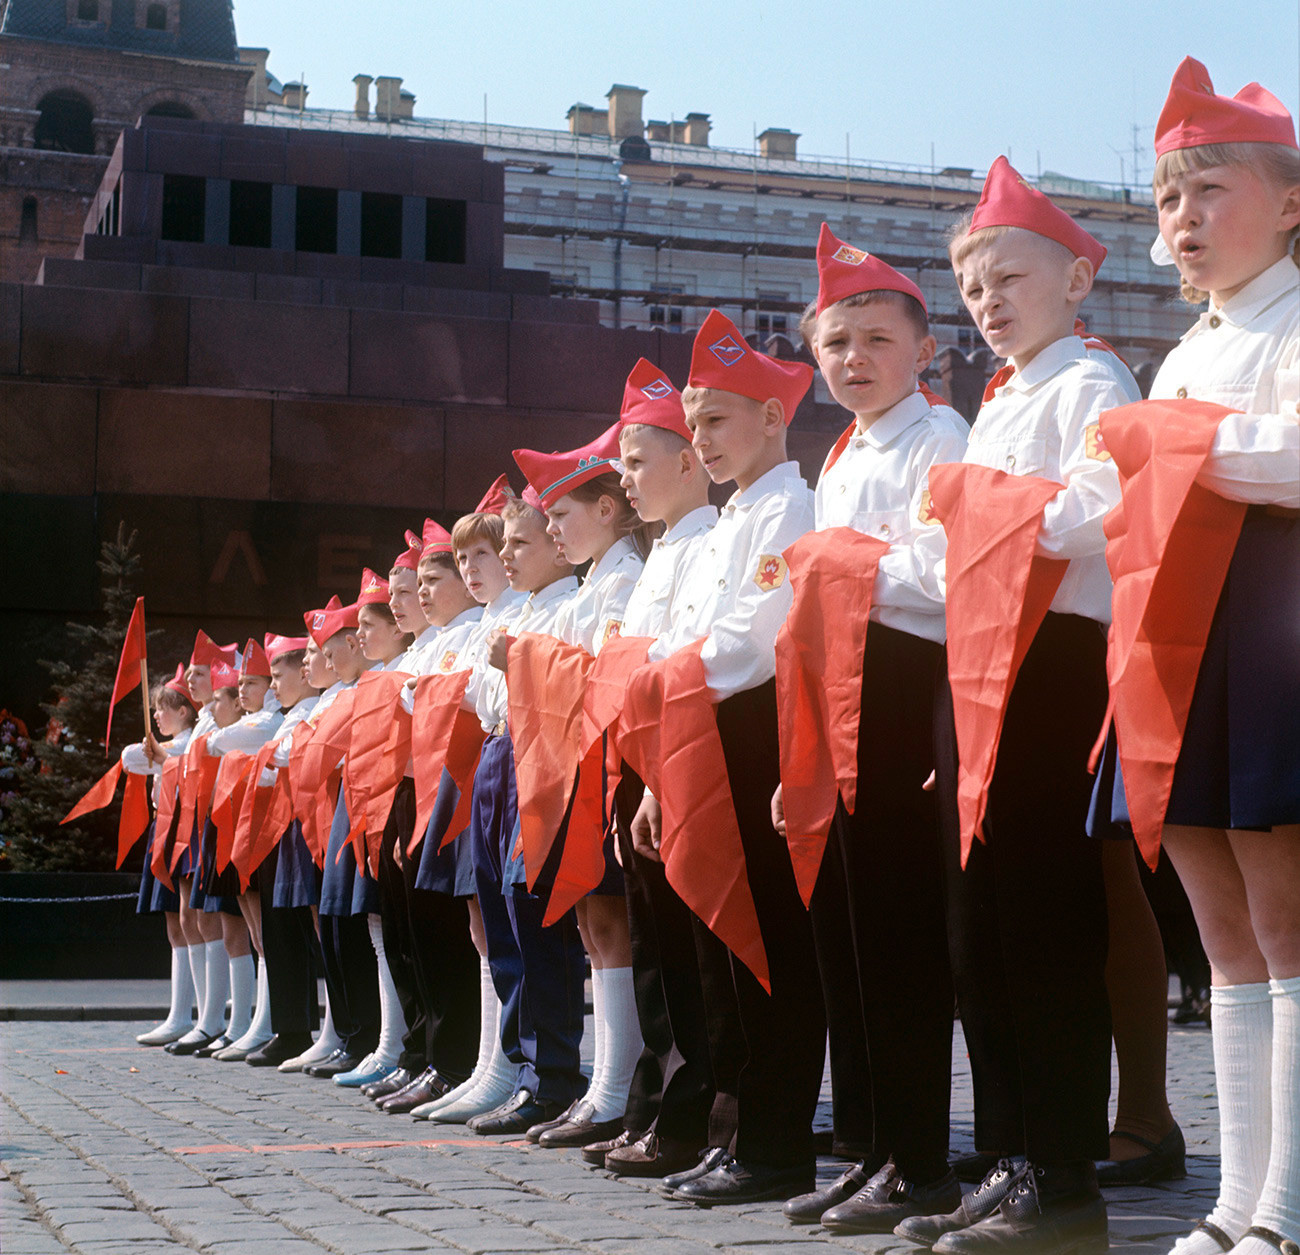 Children being recruited as Young Pioneers in the Red Square